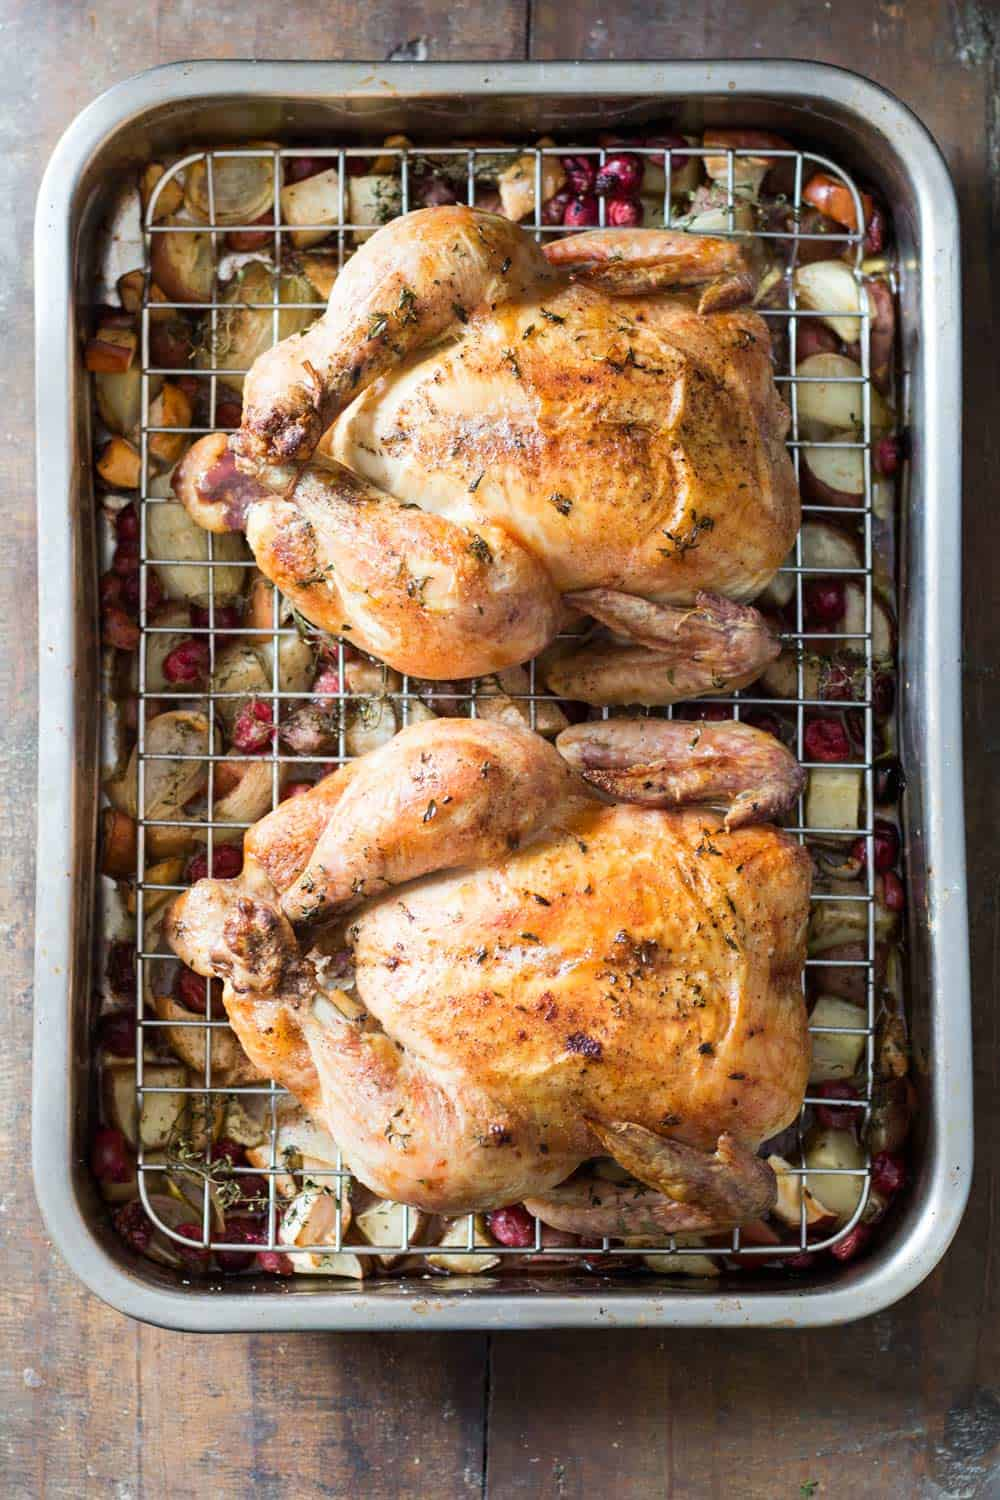 A great alternative to turkey during the holidays is Two Whole Roasted Chickens. Spoil and impress your guests with a quick and easy but tasty recipe.